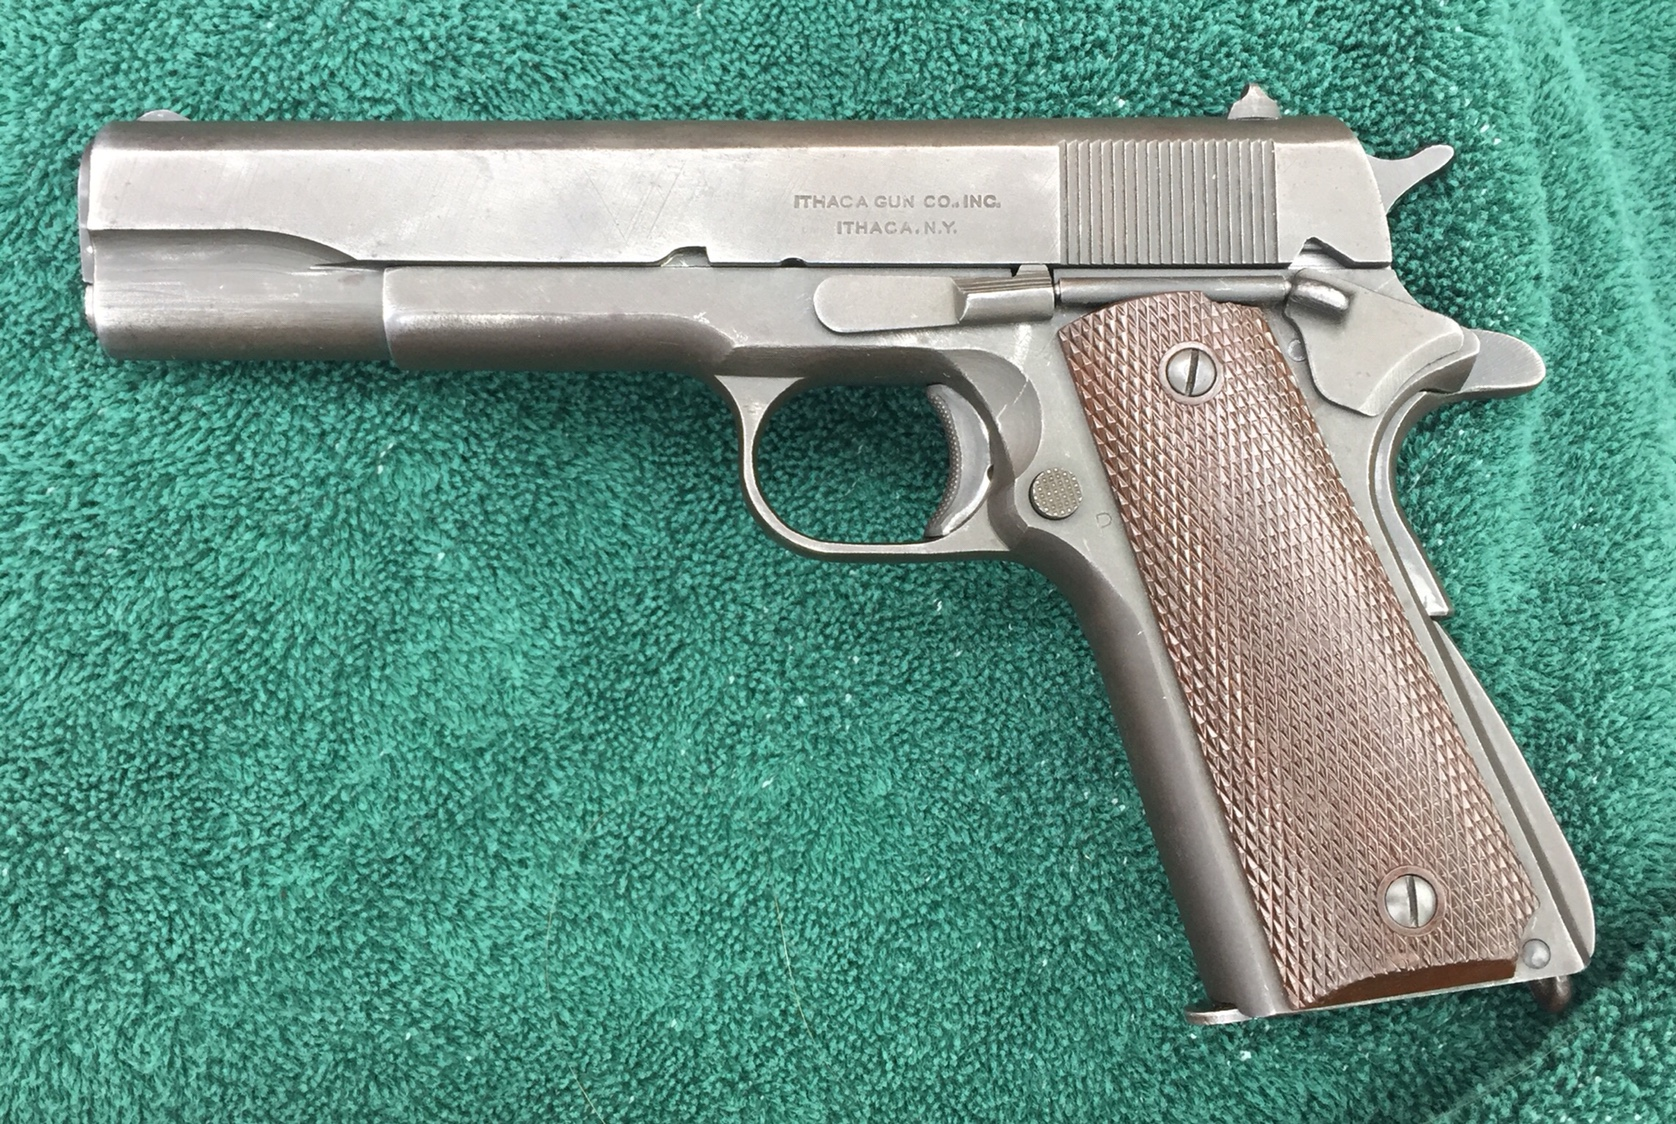 1943 Ithaca with Sweetheart Grips - FIREARMS & ORDNANCE - U S